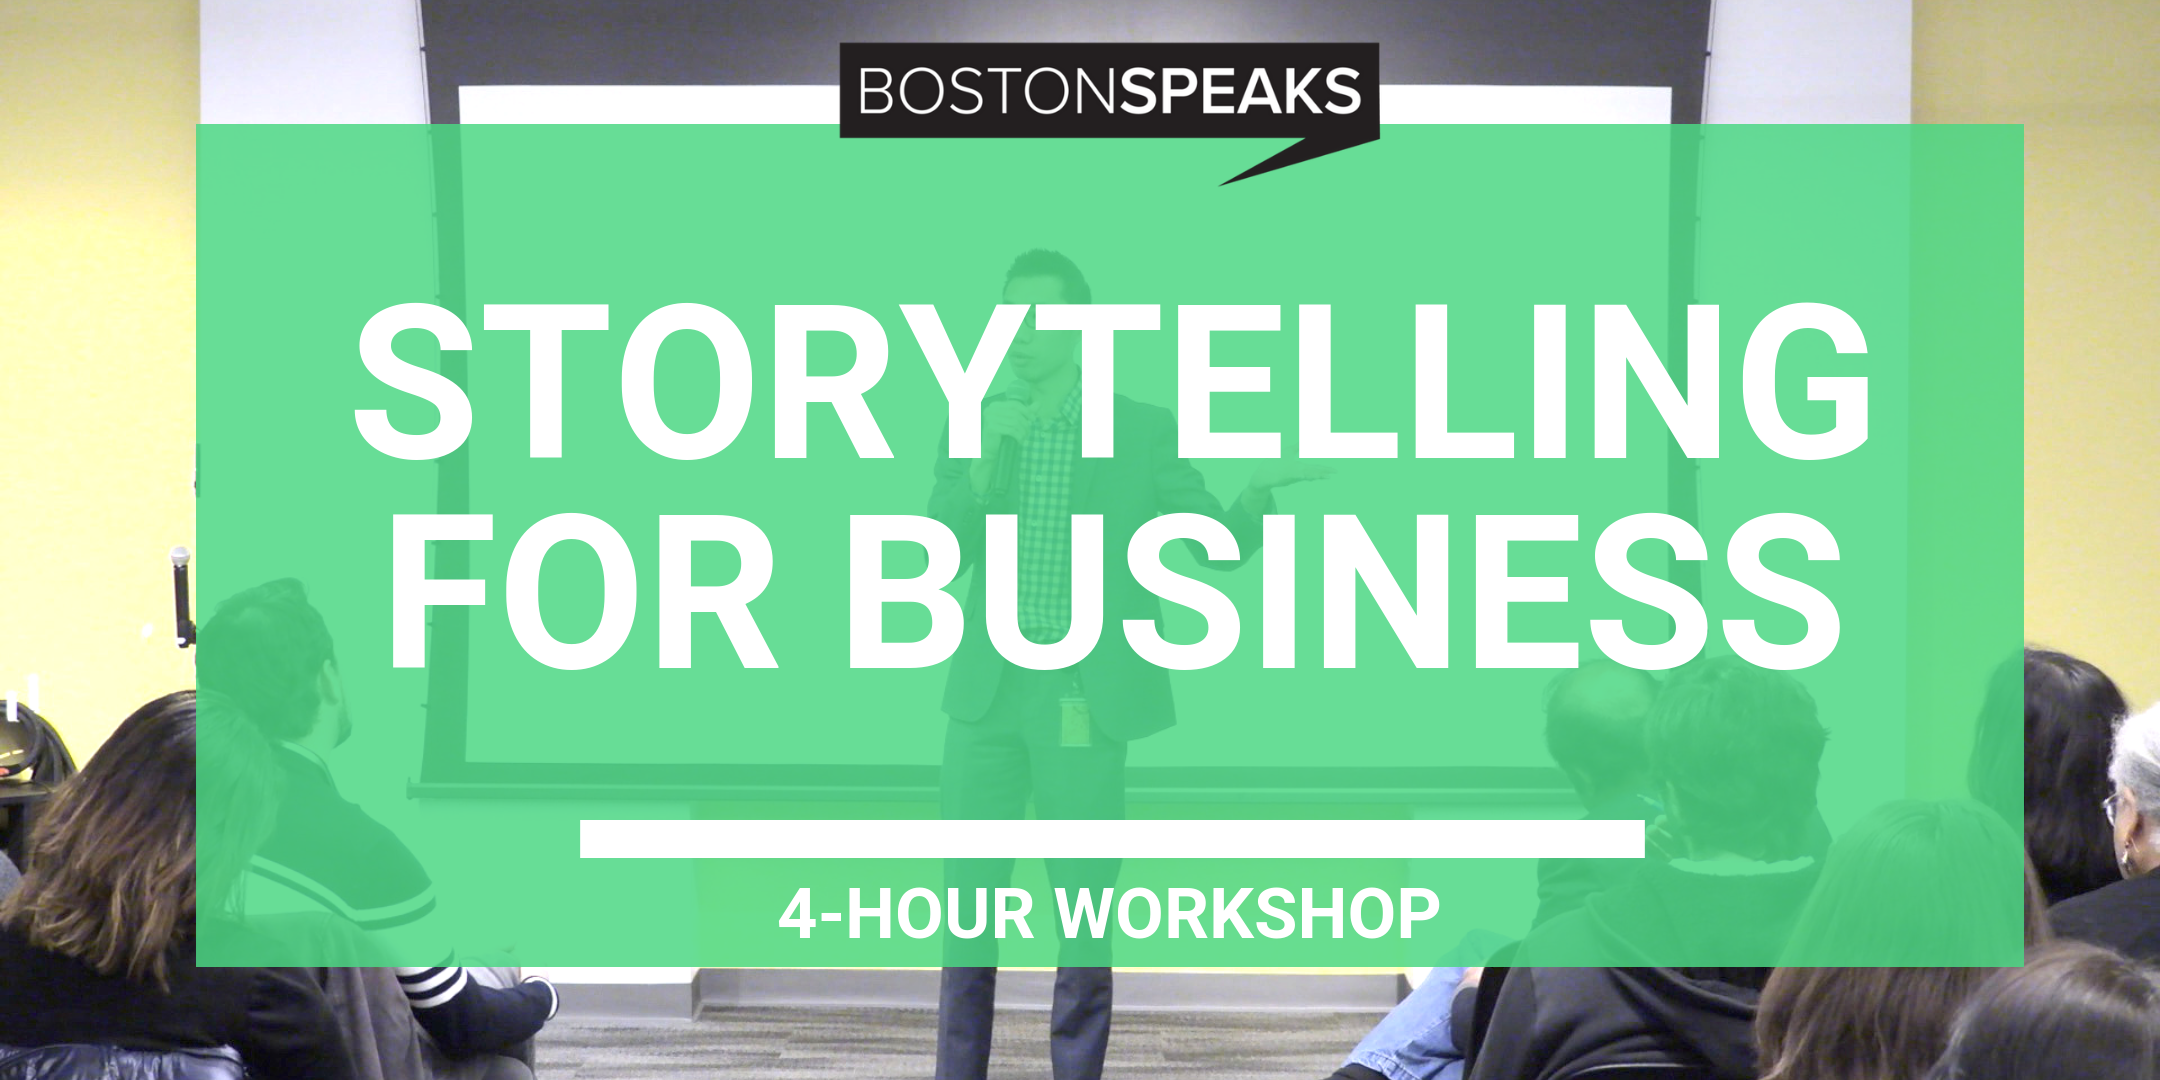 Stories For Work - LEARN HOW TO USE STORYTELLING TO LEAD, INSPIRE AND MAKE YOUR IDEAS STICK (4-HOUR WORKSHOP)